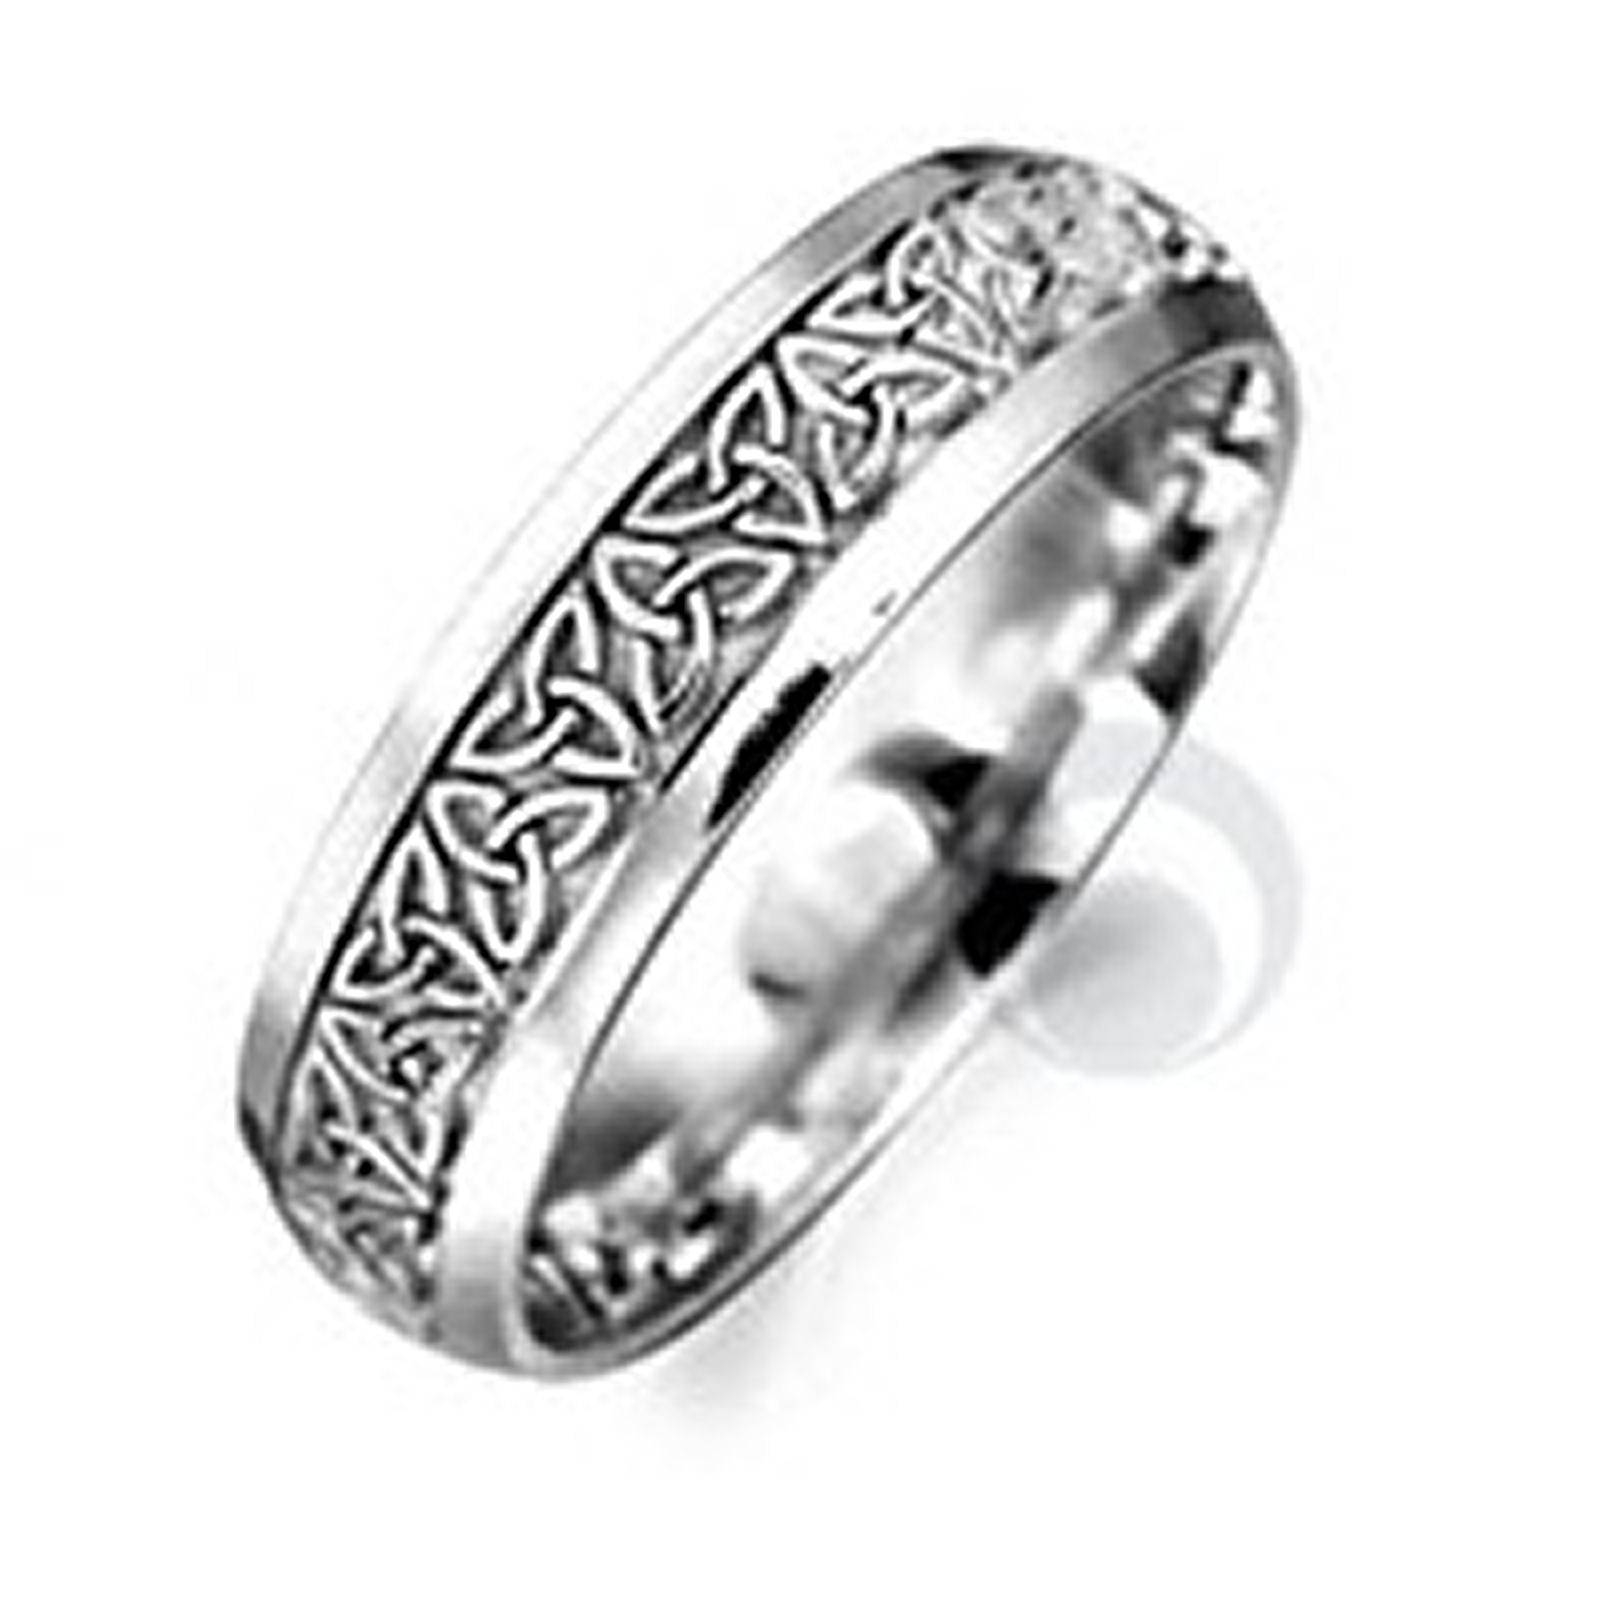 rings ring celtic wedding wallpaper music gold engagement gaelic